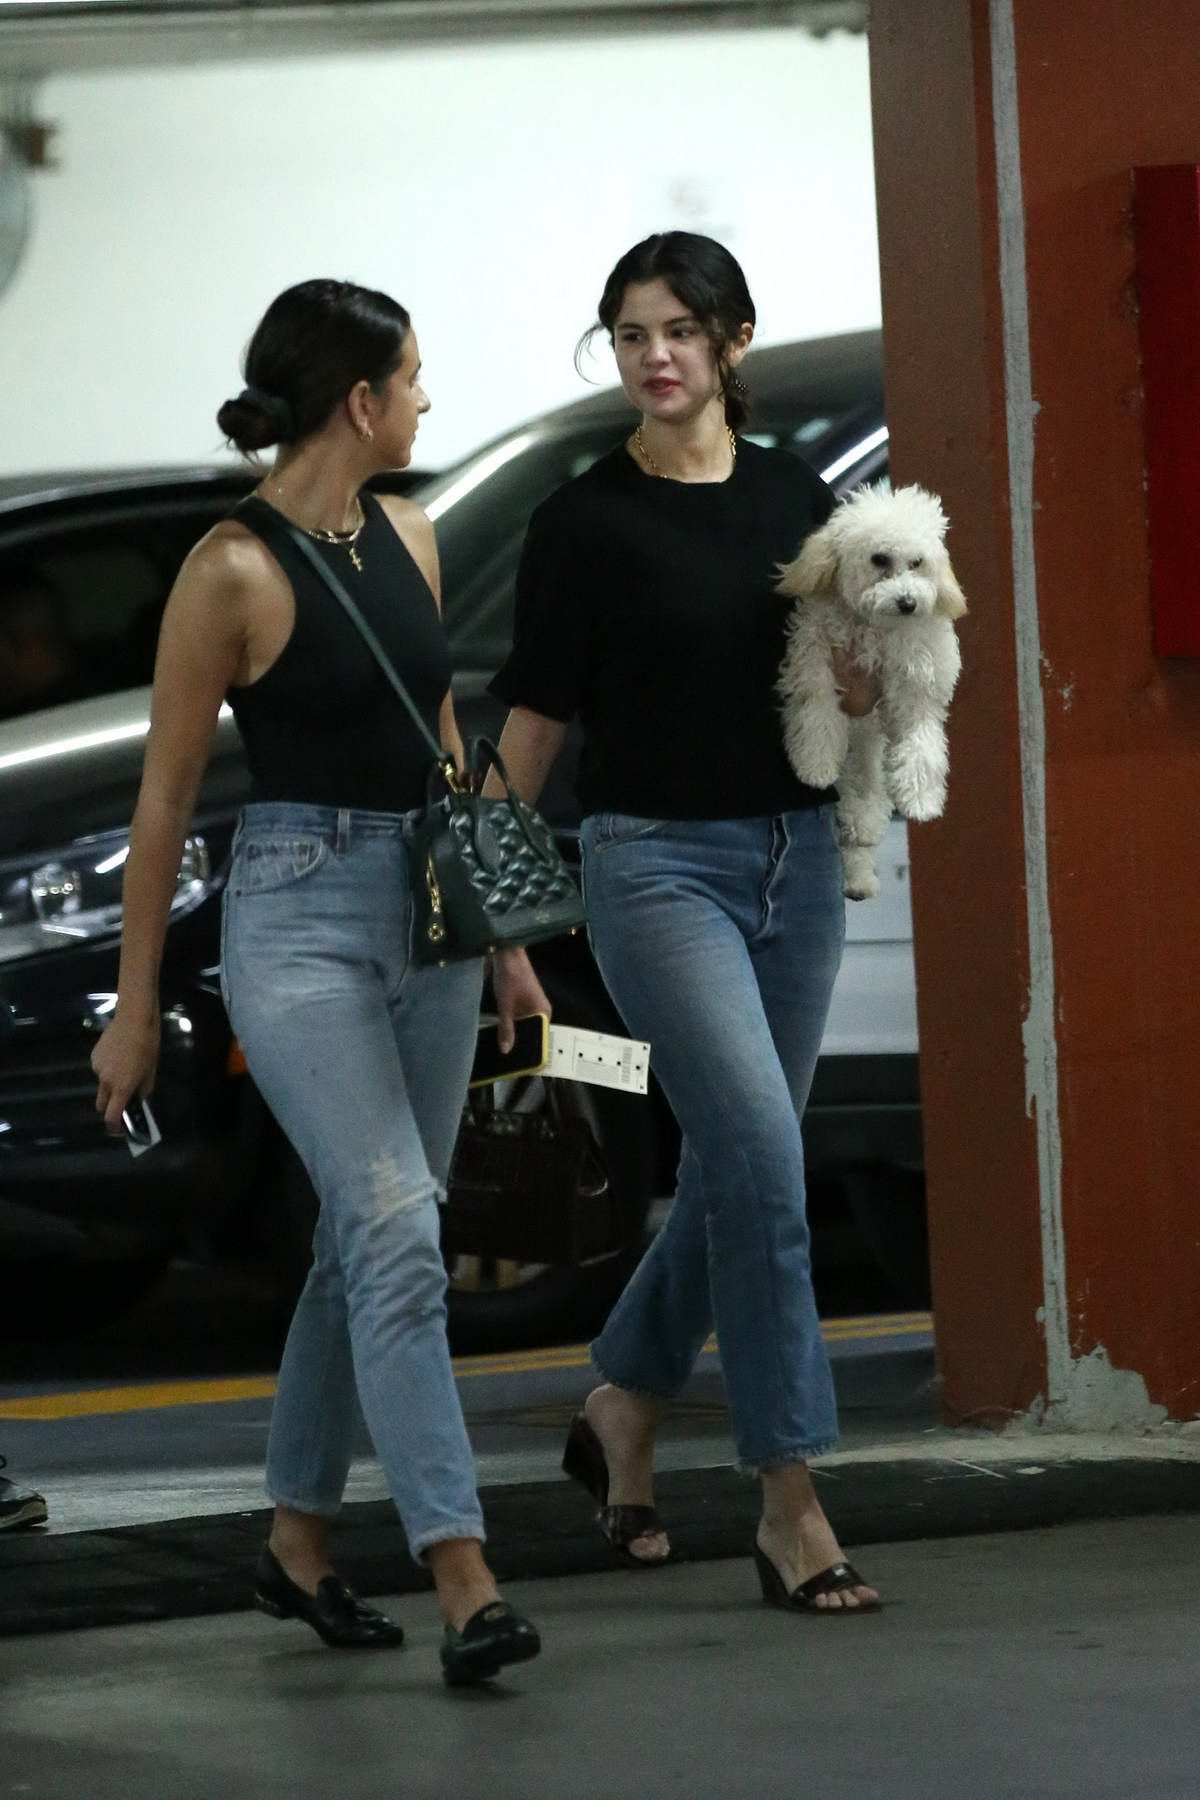 Selena Gomez seen leaving a 'Shark Tank' filming studio with her puppy in West Hollywood, Los Angeles